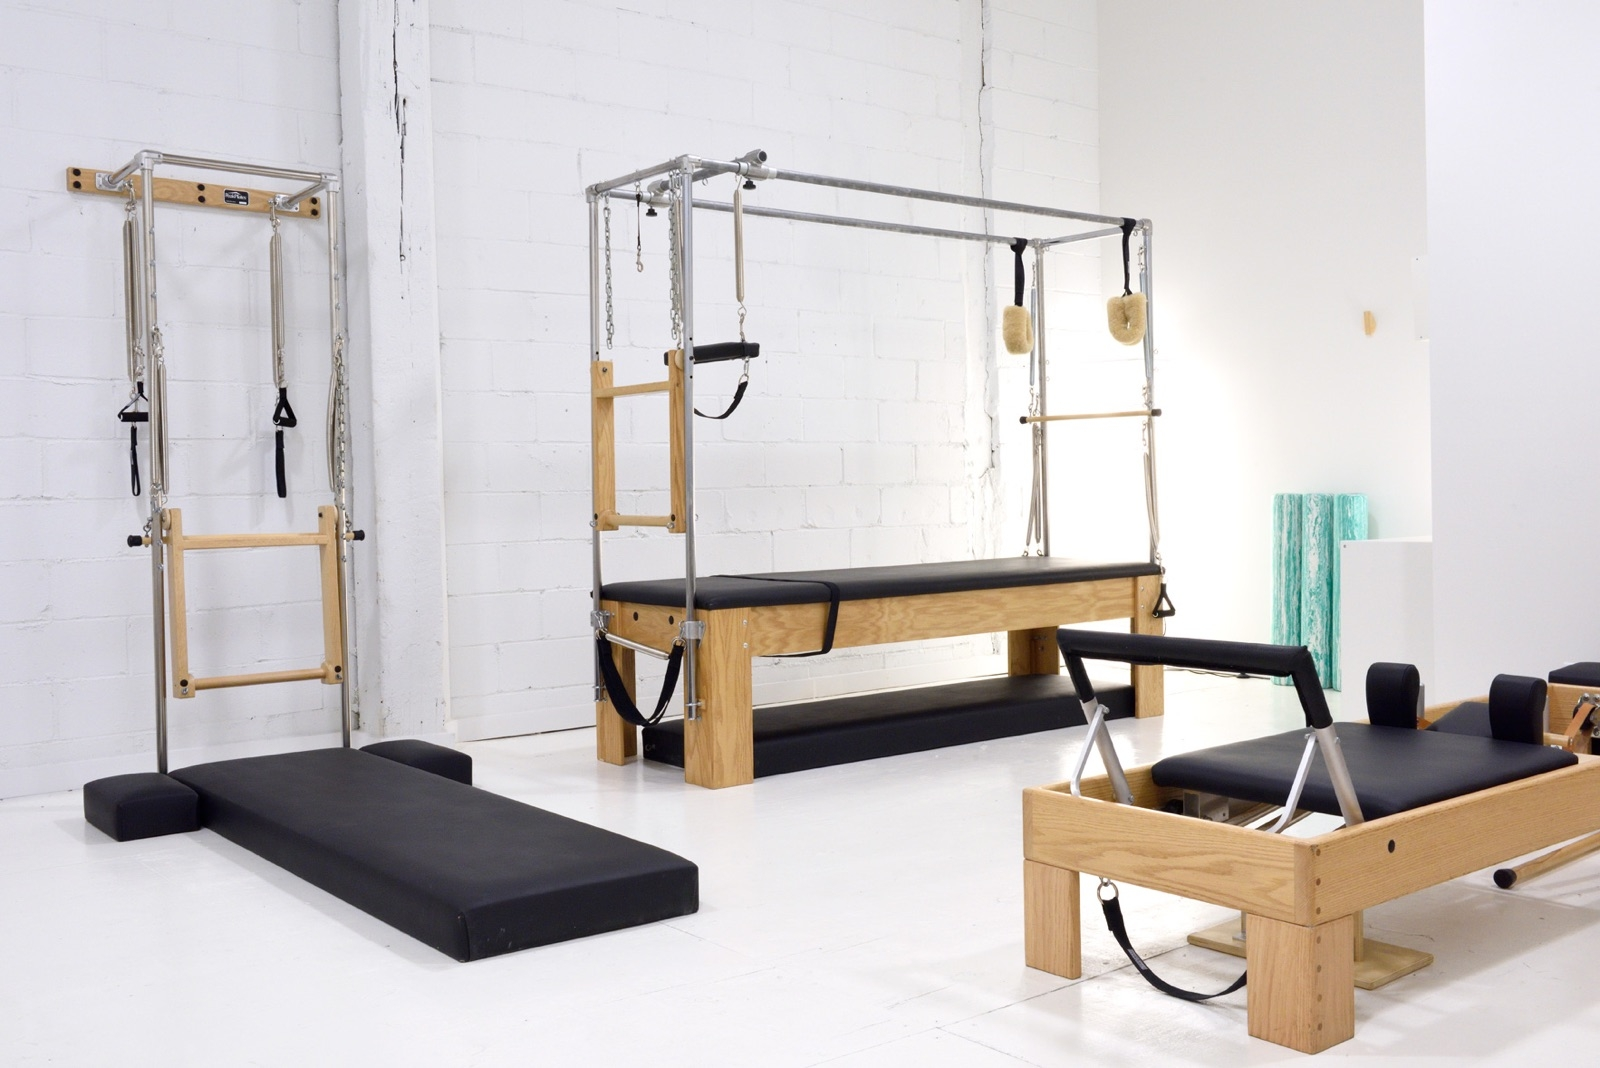 Brooklyn Pilates Project Studio.JPG